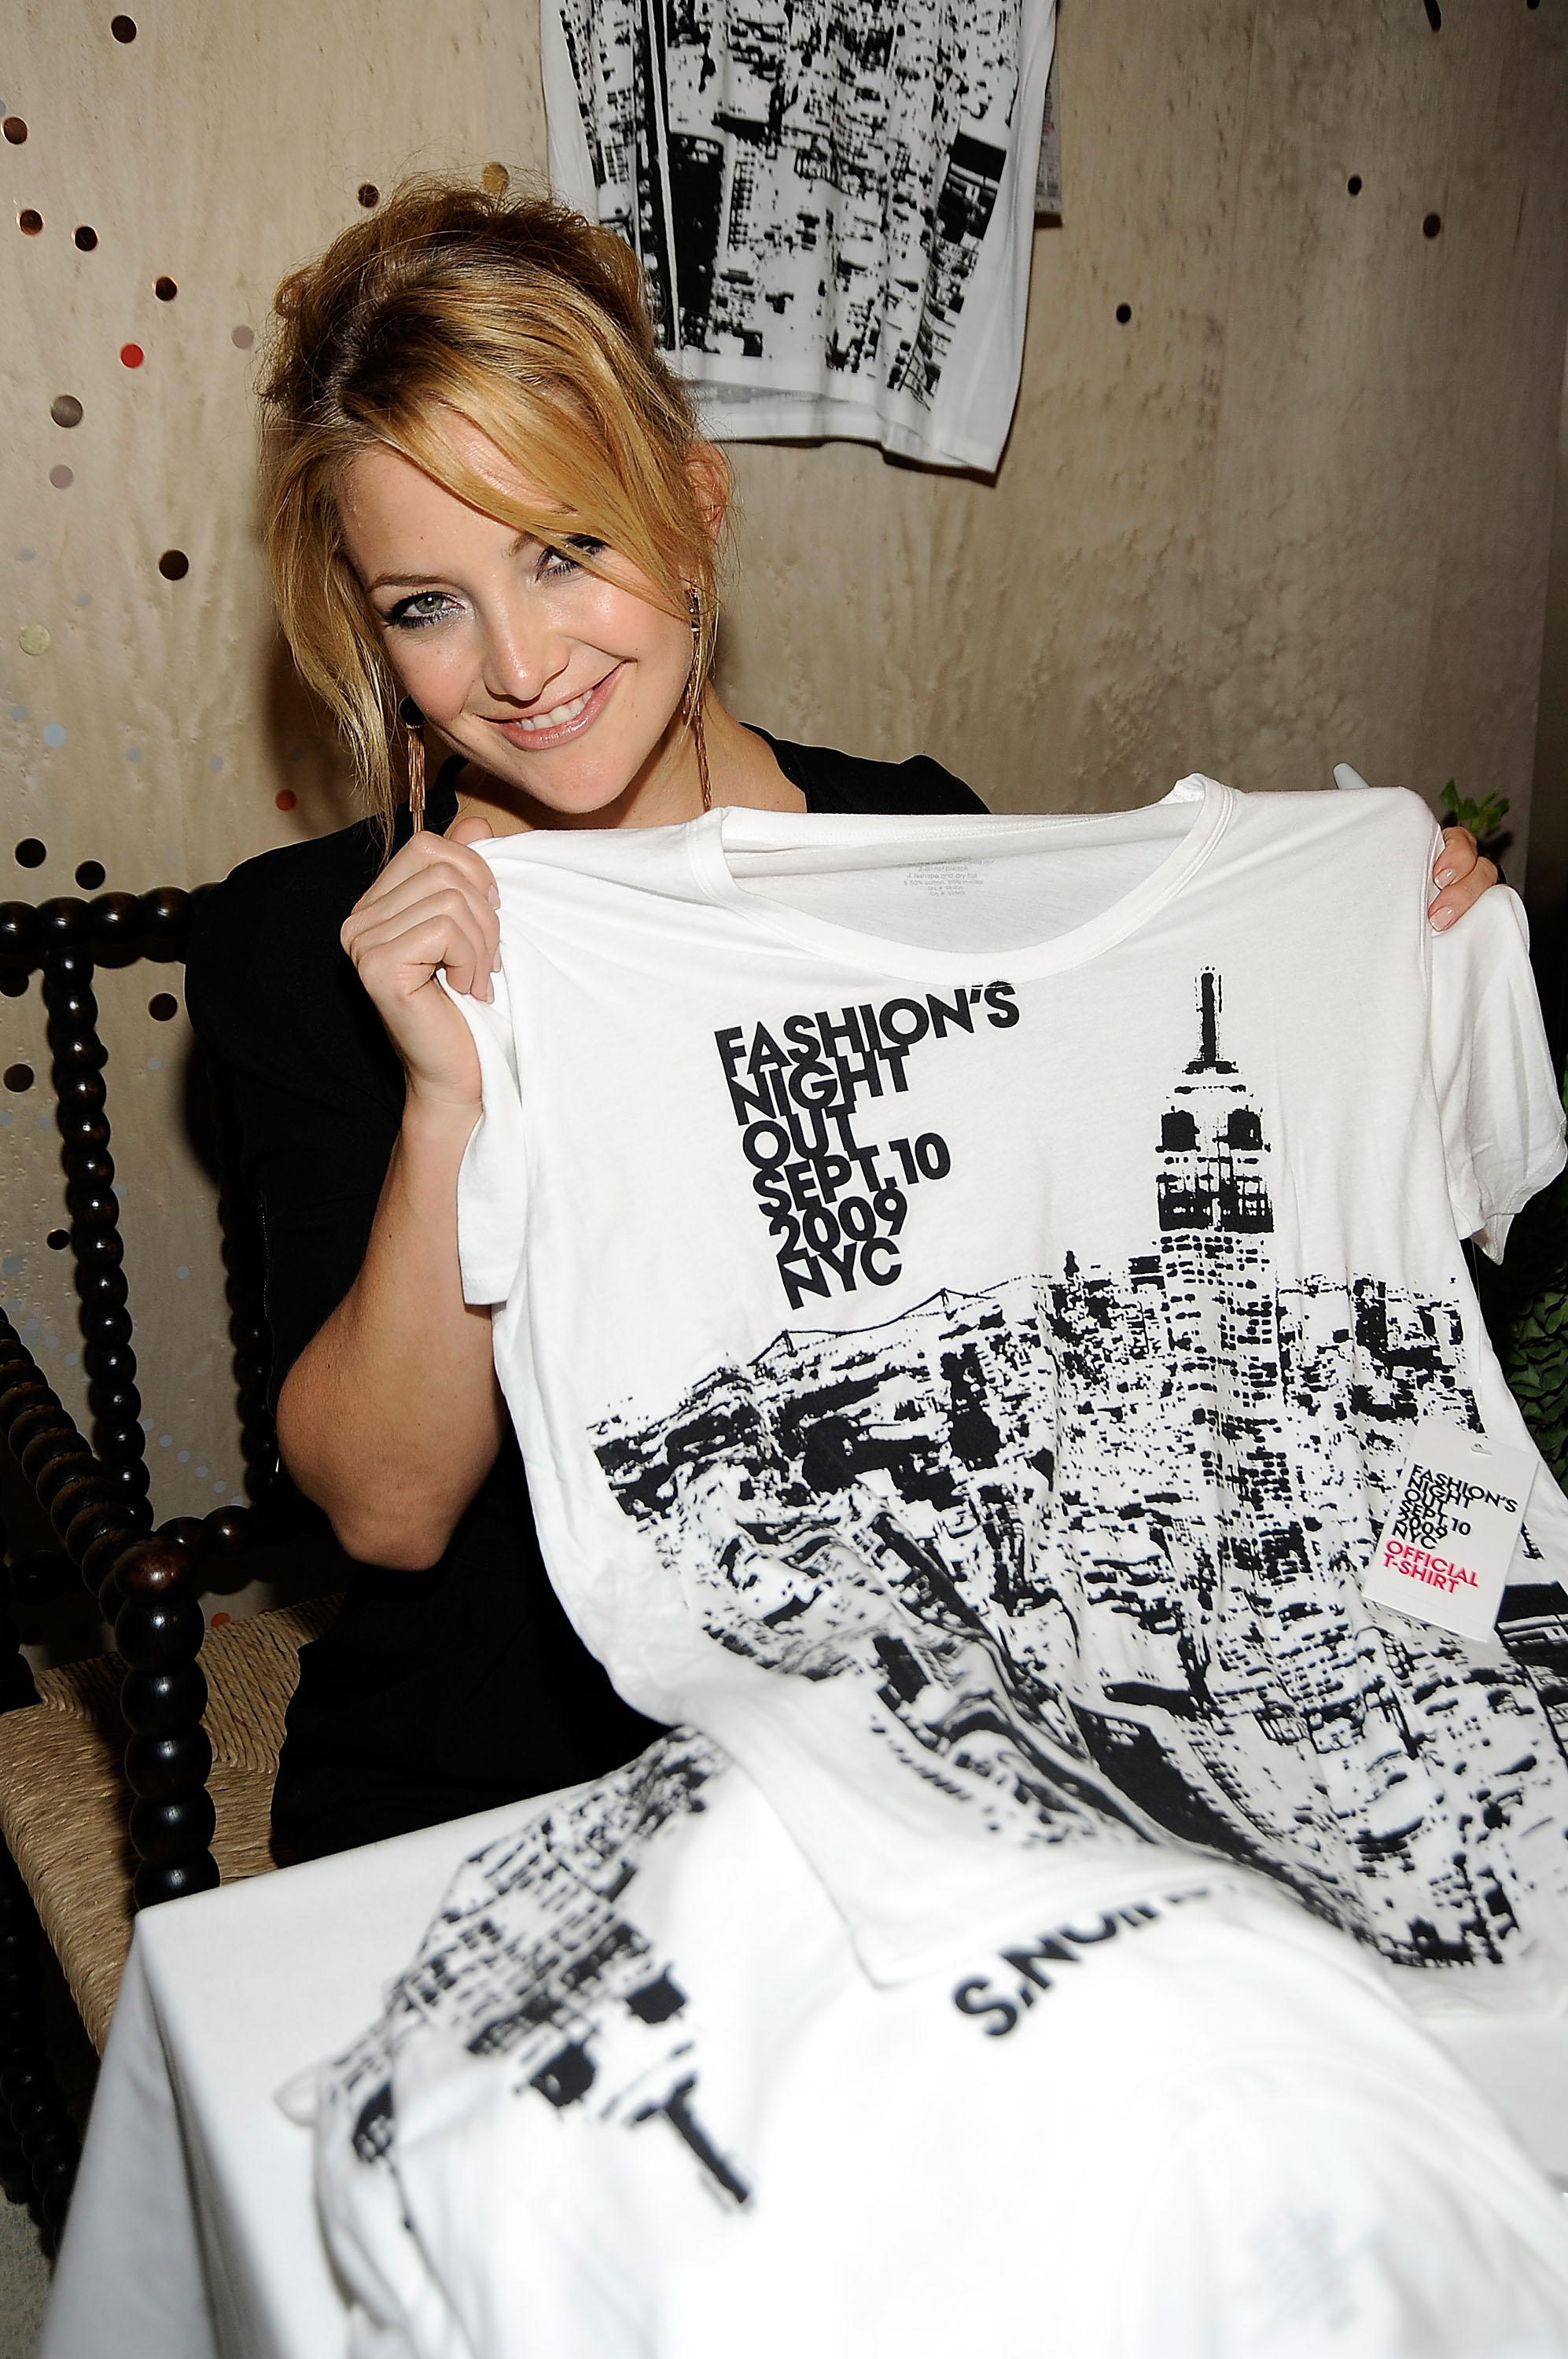 Kate shows off the event's tee